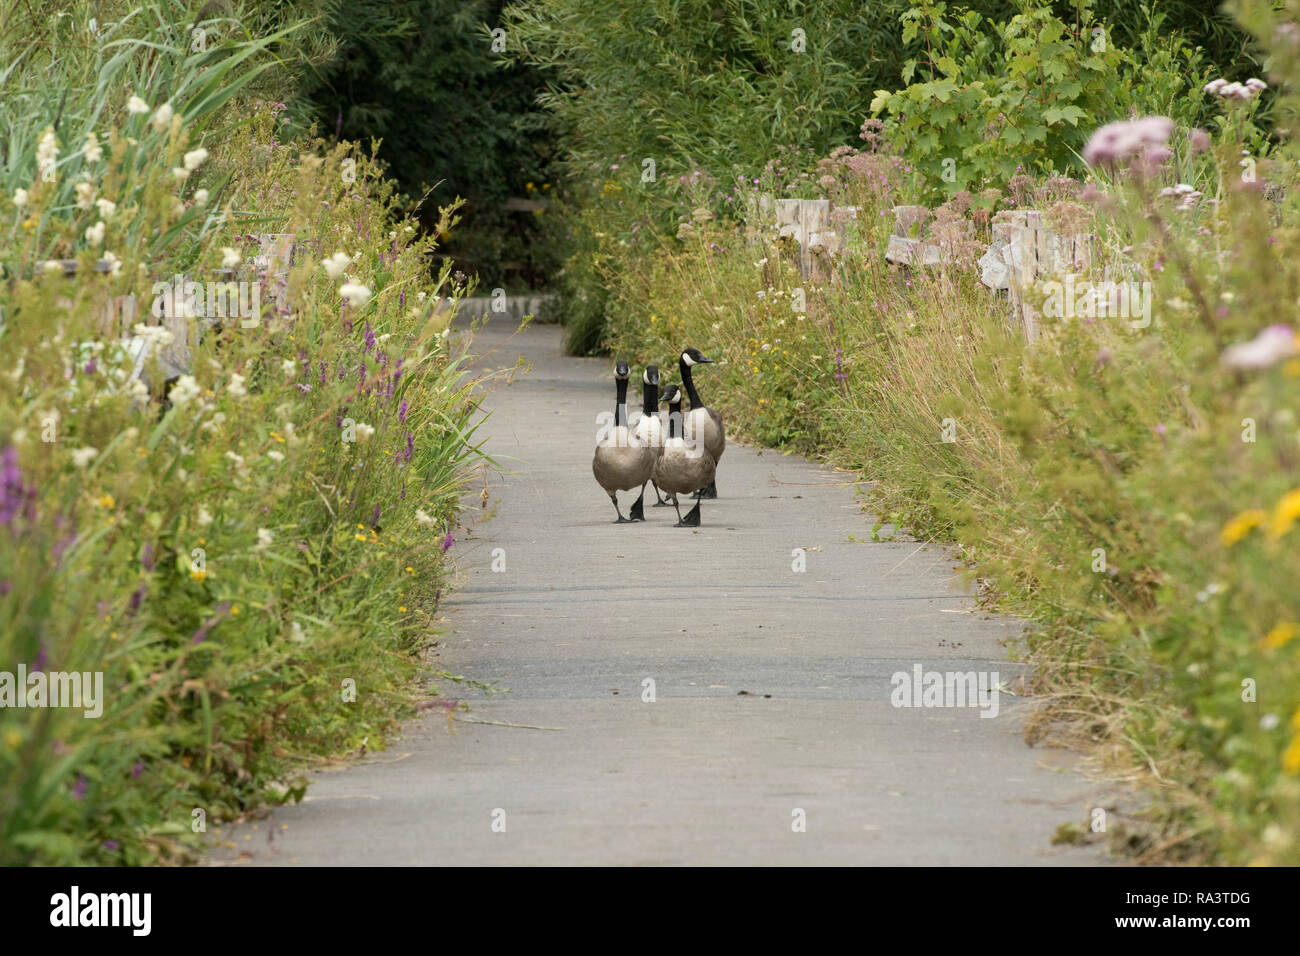 Four Canada geese, Branta canadensis, walking down a tarmac path between high vegetation, Arundel, West, Sussex, July - Stock Image